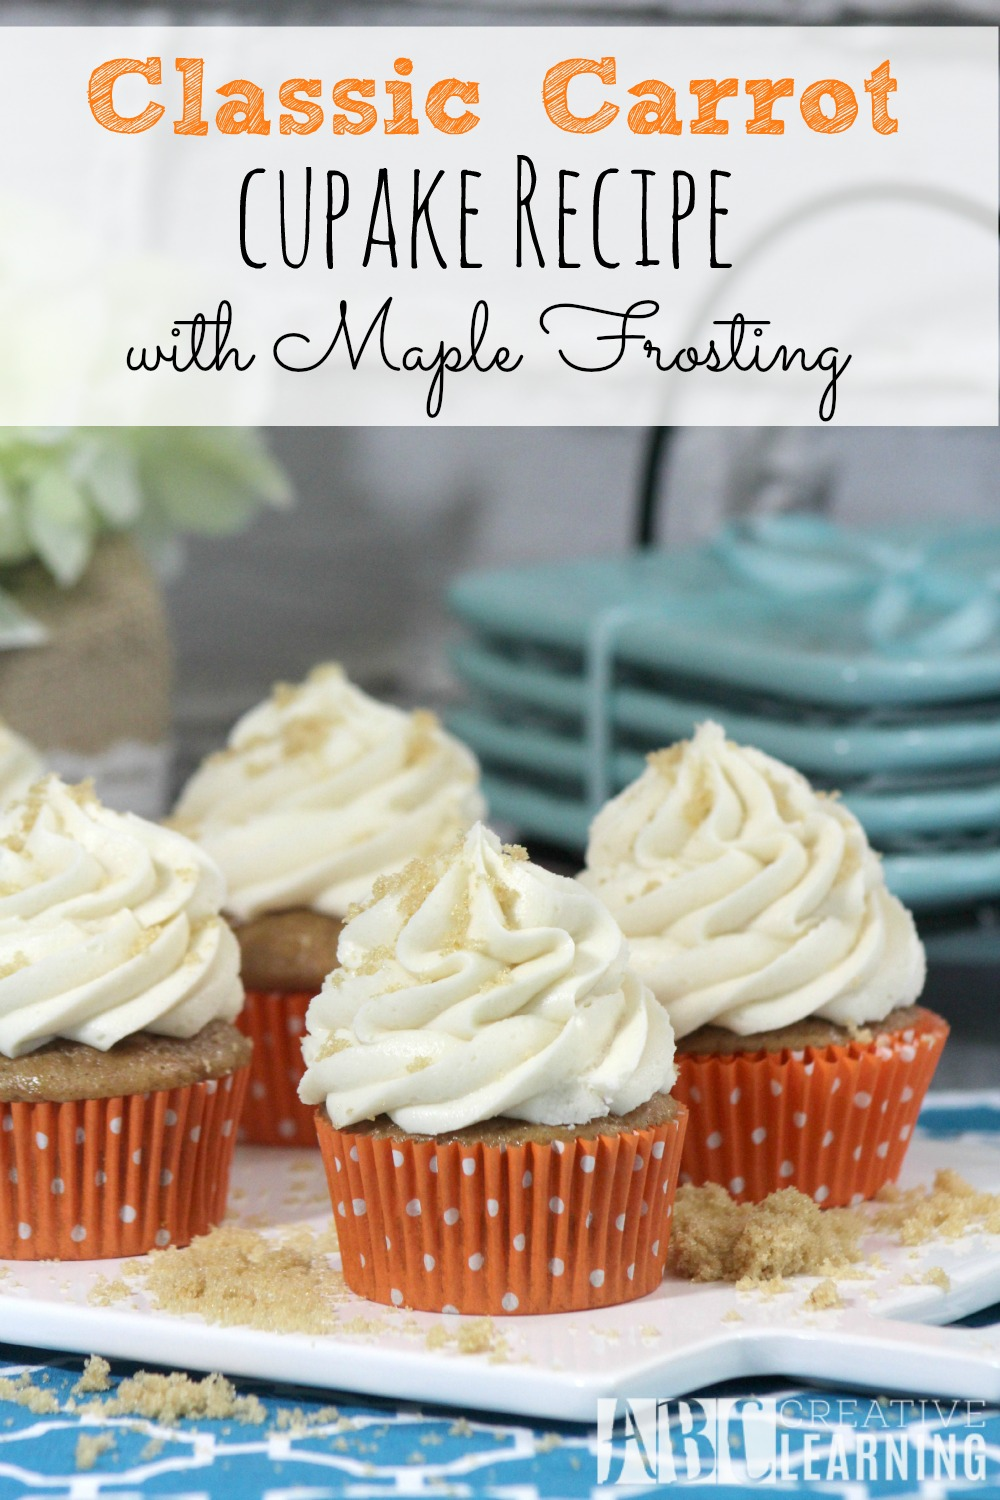 Classic Carrot Cupcakes with Maple Frosting